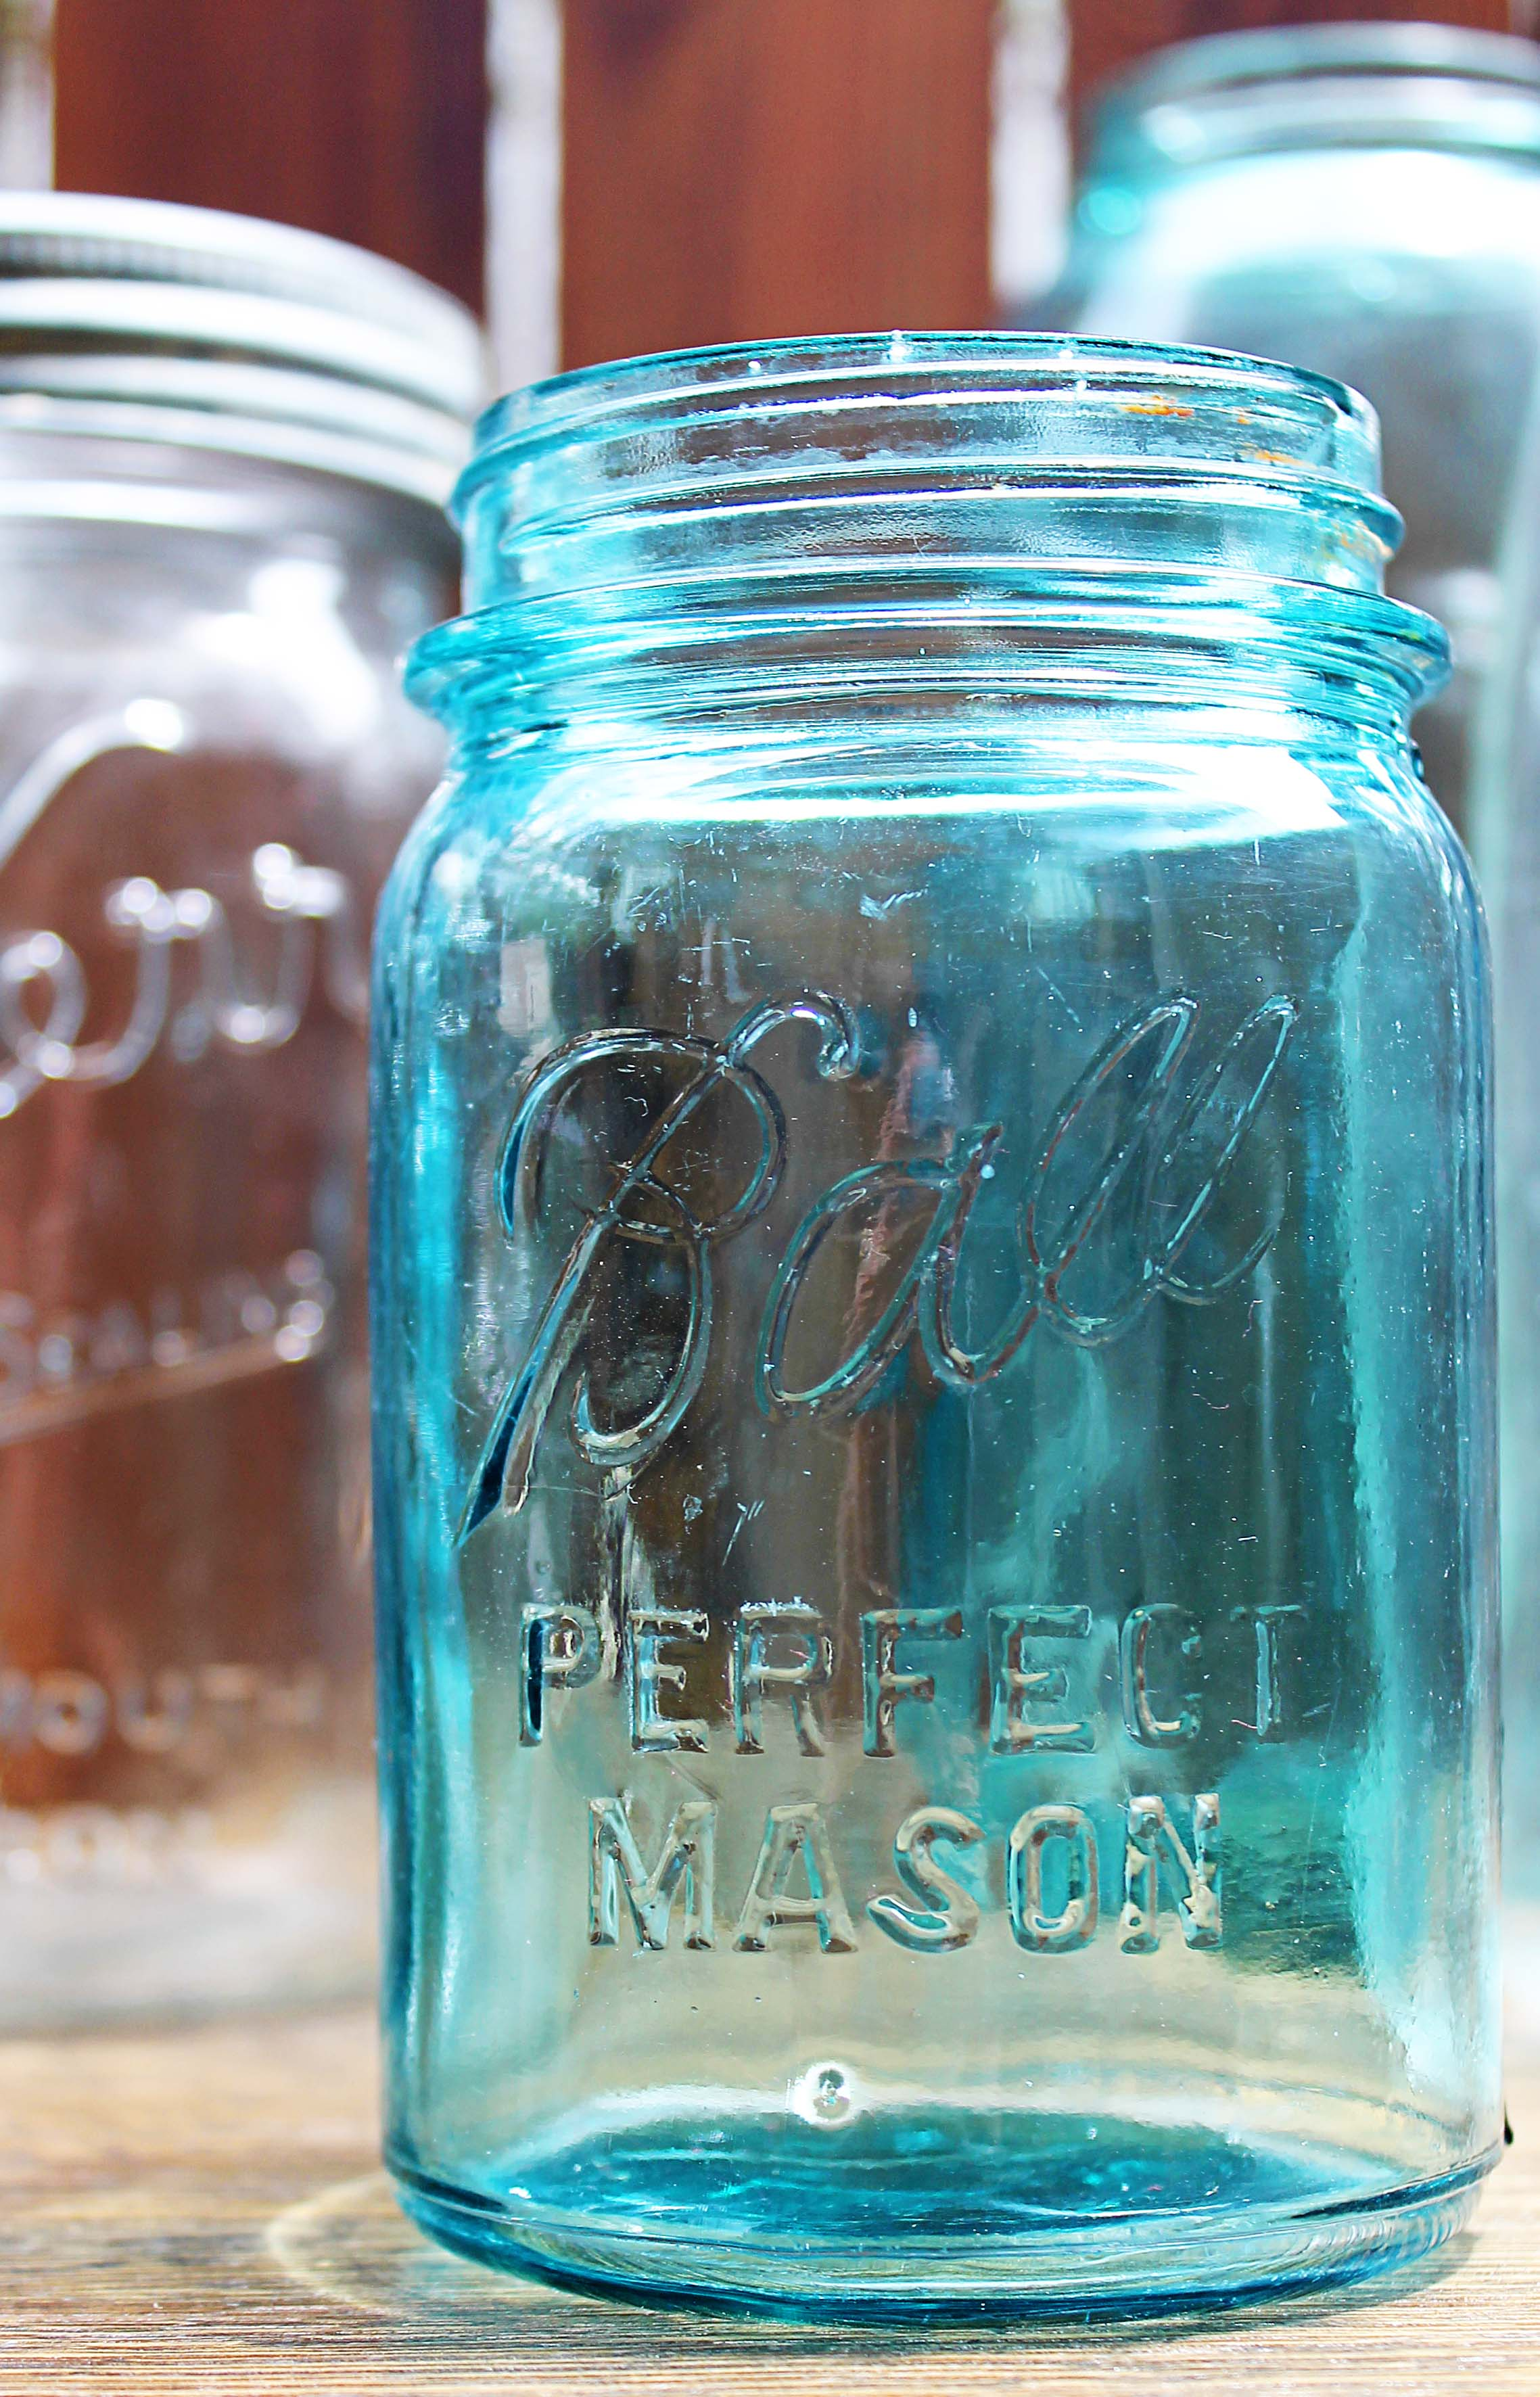 dating blue mason jars Factors with a significant affect on a mason jar's value include the date of how do you determine the value of antique mason jars a: a teal blue mason jar.